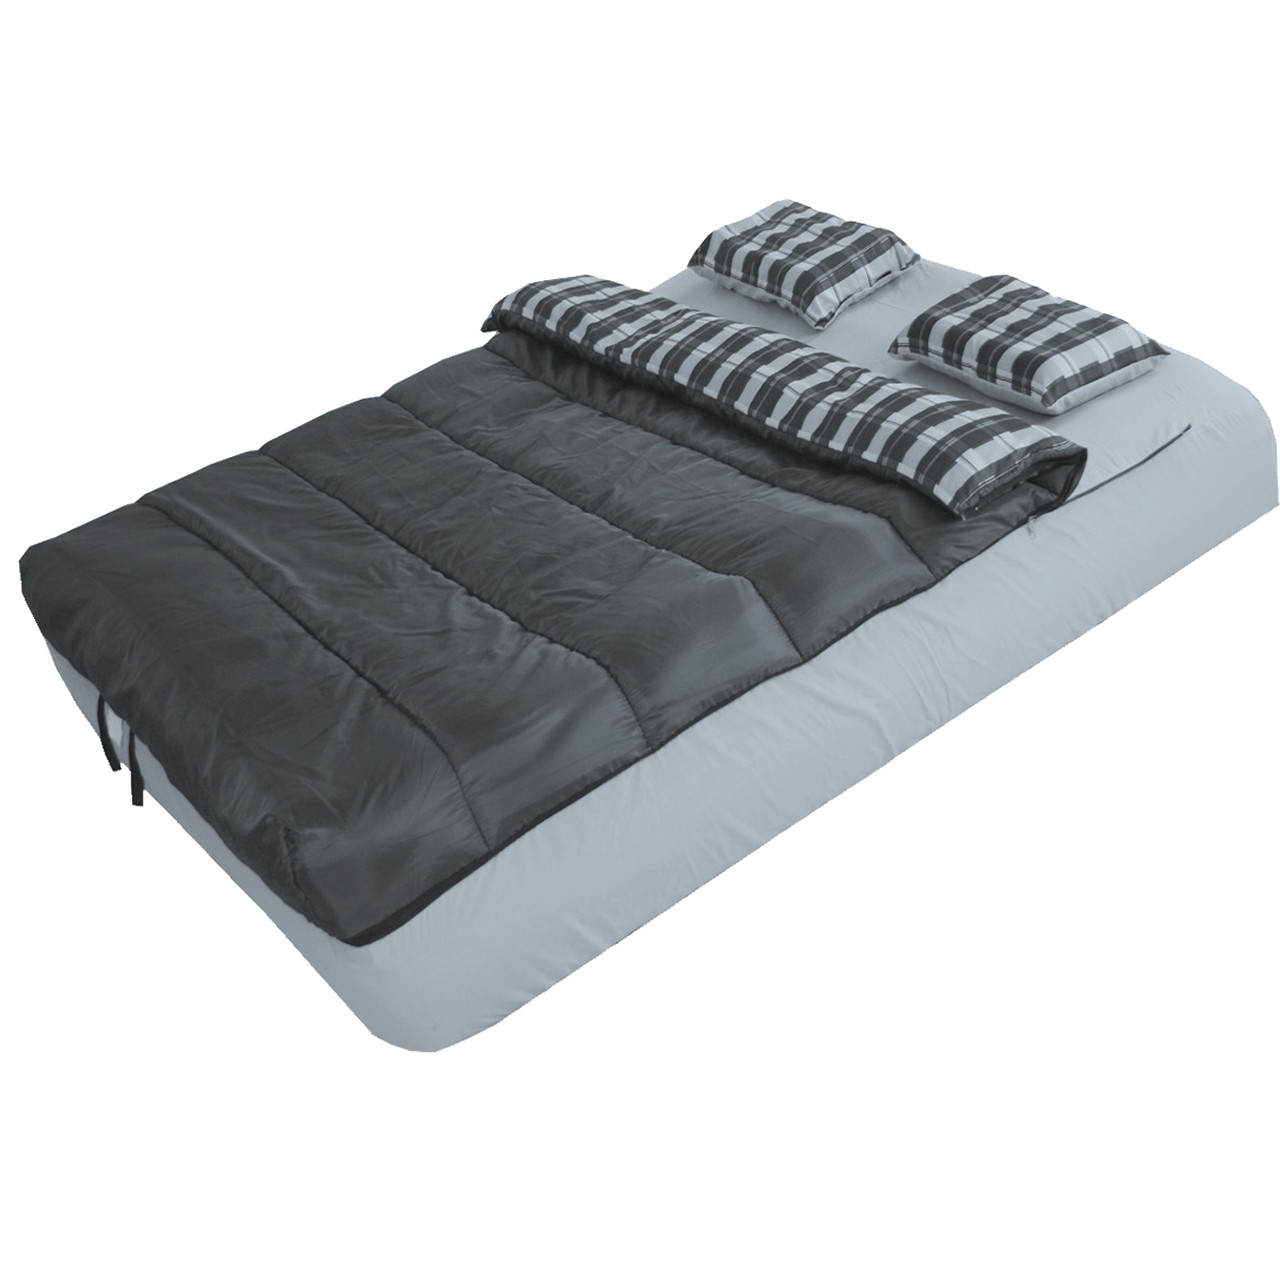 Instabed 6-Piece Bed Set For Airbeds - Gray, shown on an inflated airbed